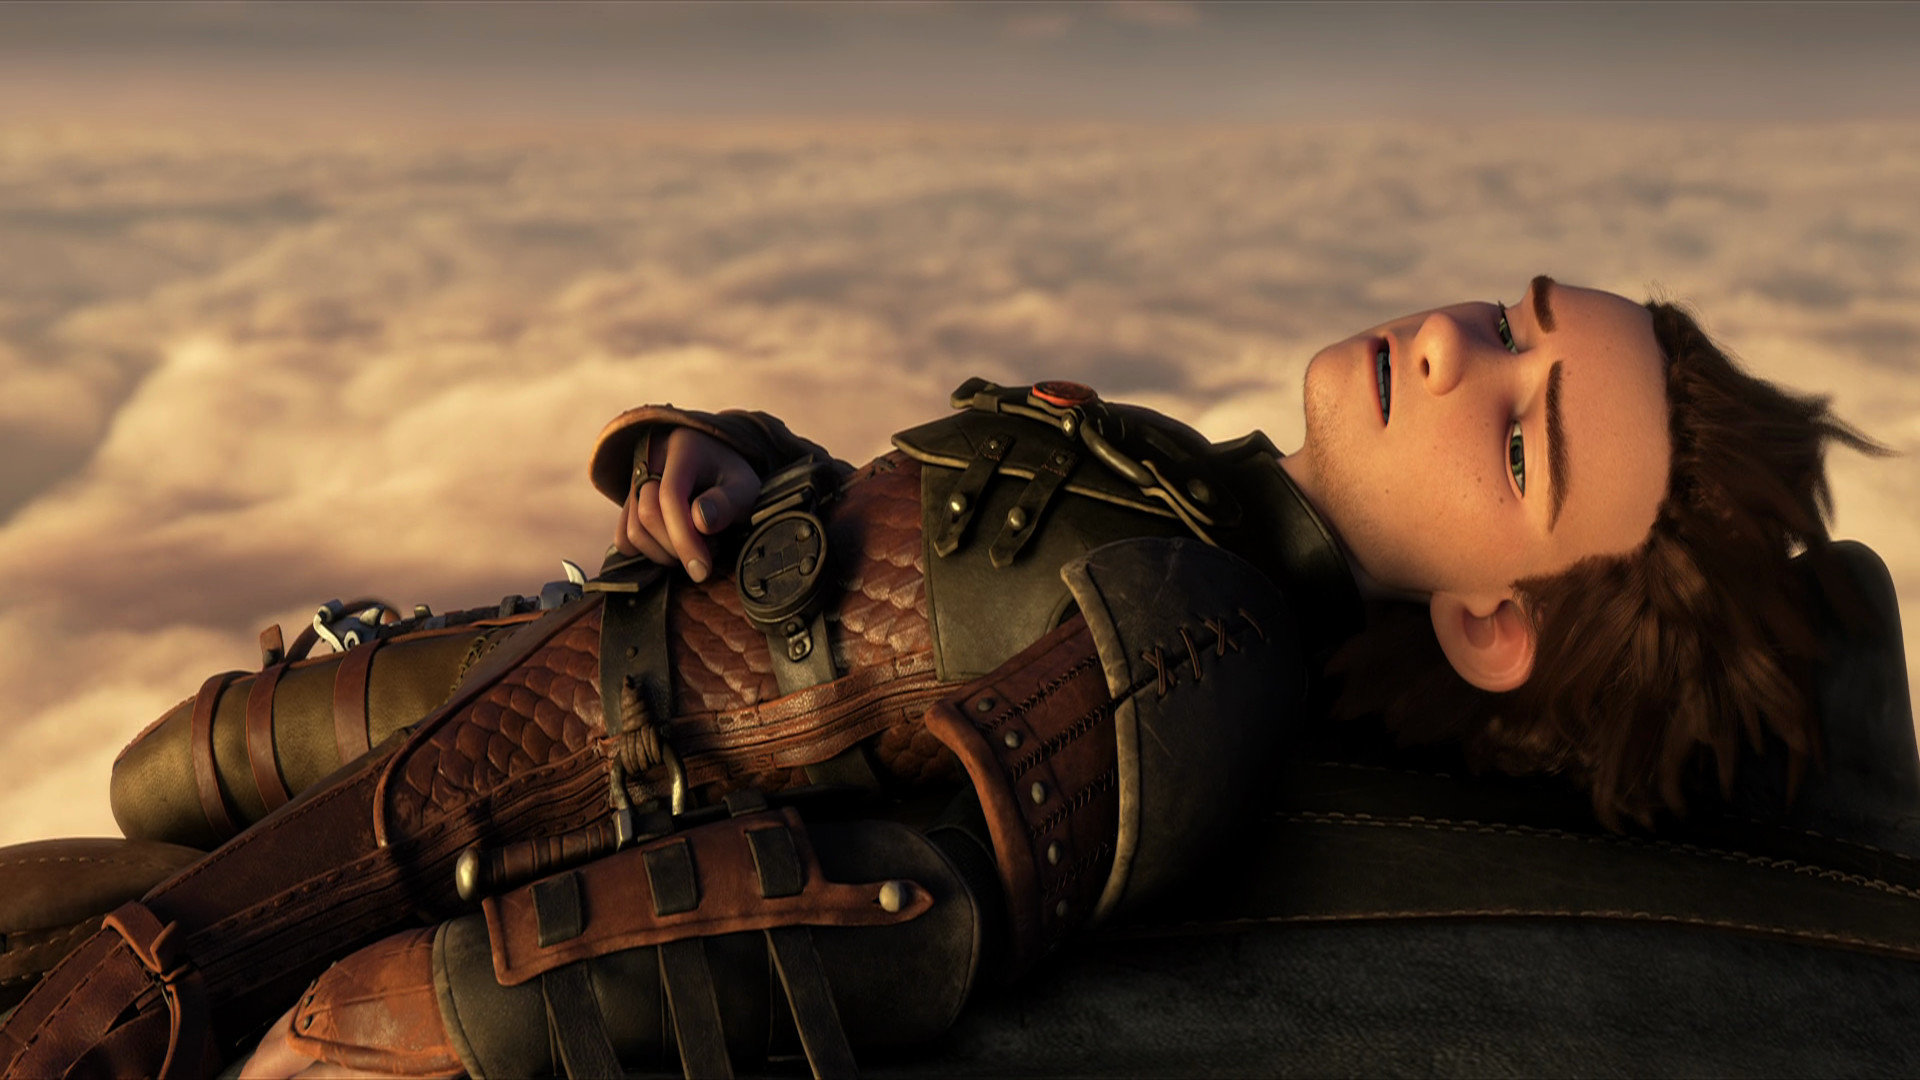 Hiccup how to train your dragon wallpapers hd for - How to train your dragon hd download ...